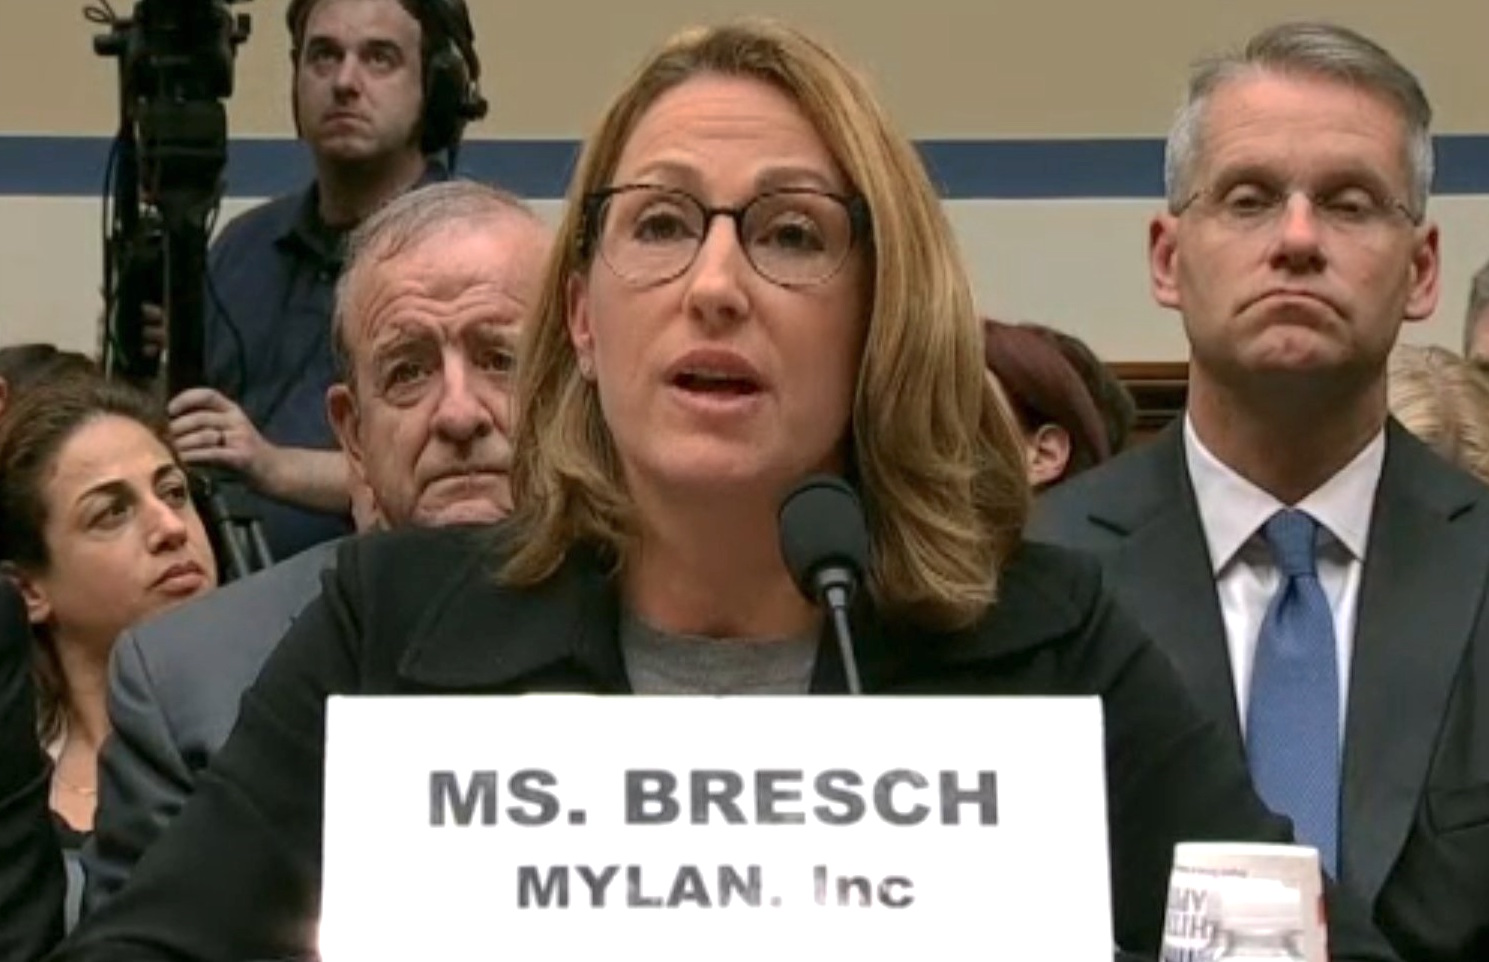 Congress lambastes company CEO over EpiPen price hike